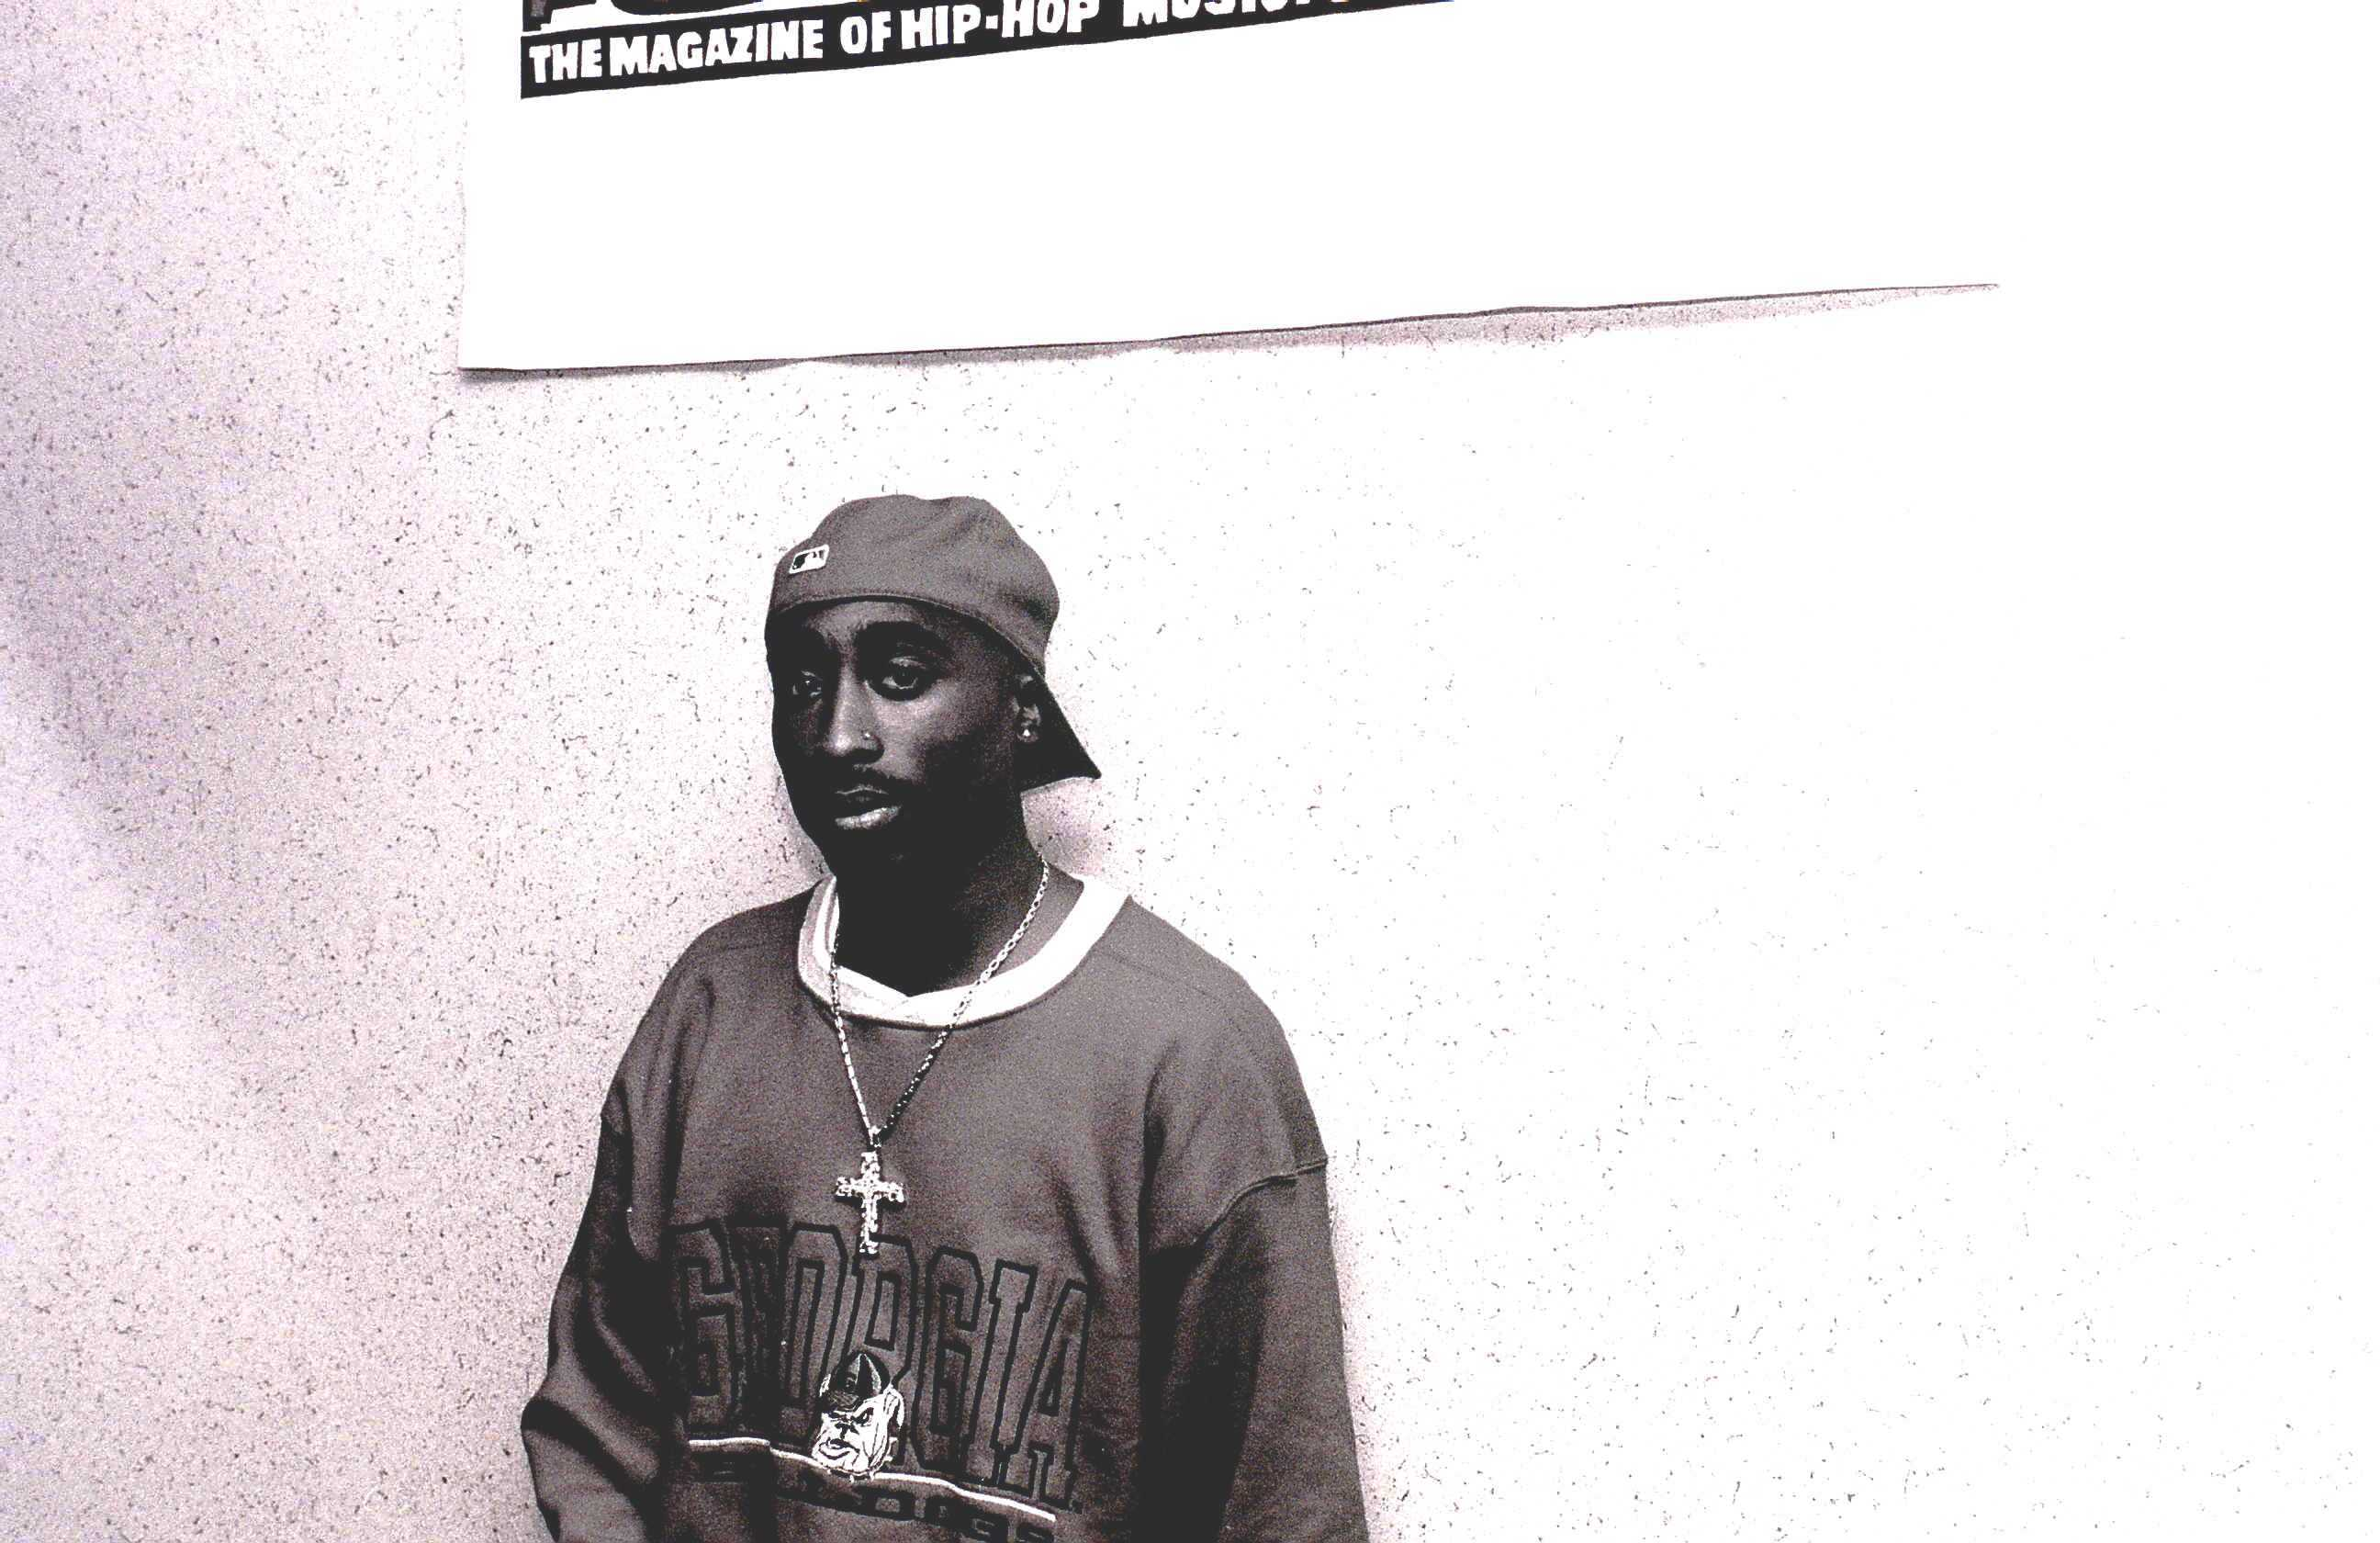 """the problems of gangsta rap essay Directly to issues of identity, culture, violence, and nihilism—themes that   assertion of gangsta rap as """"ghettocentric"""": """"the construction of the ghetto as a   critical essays on rap music and hip hop culture, edited by w e perkins  philadel."""